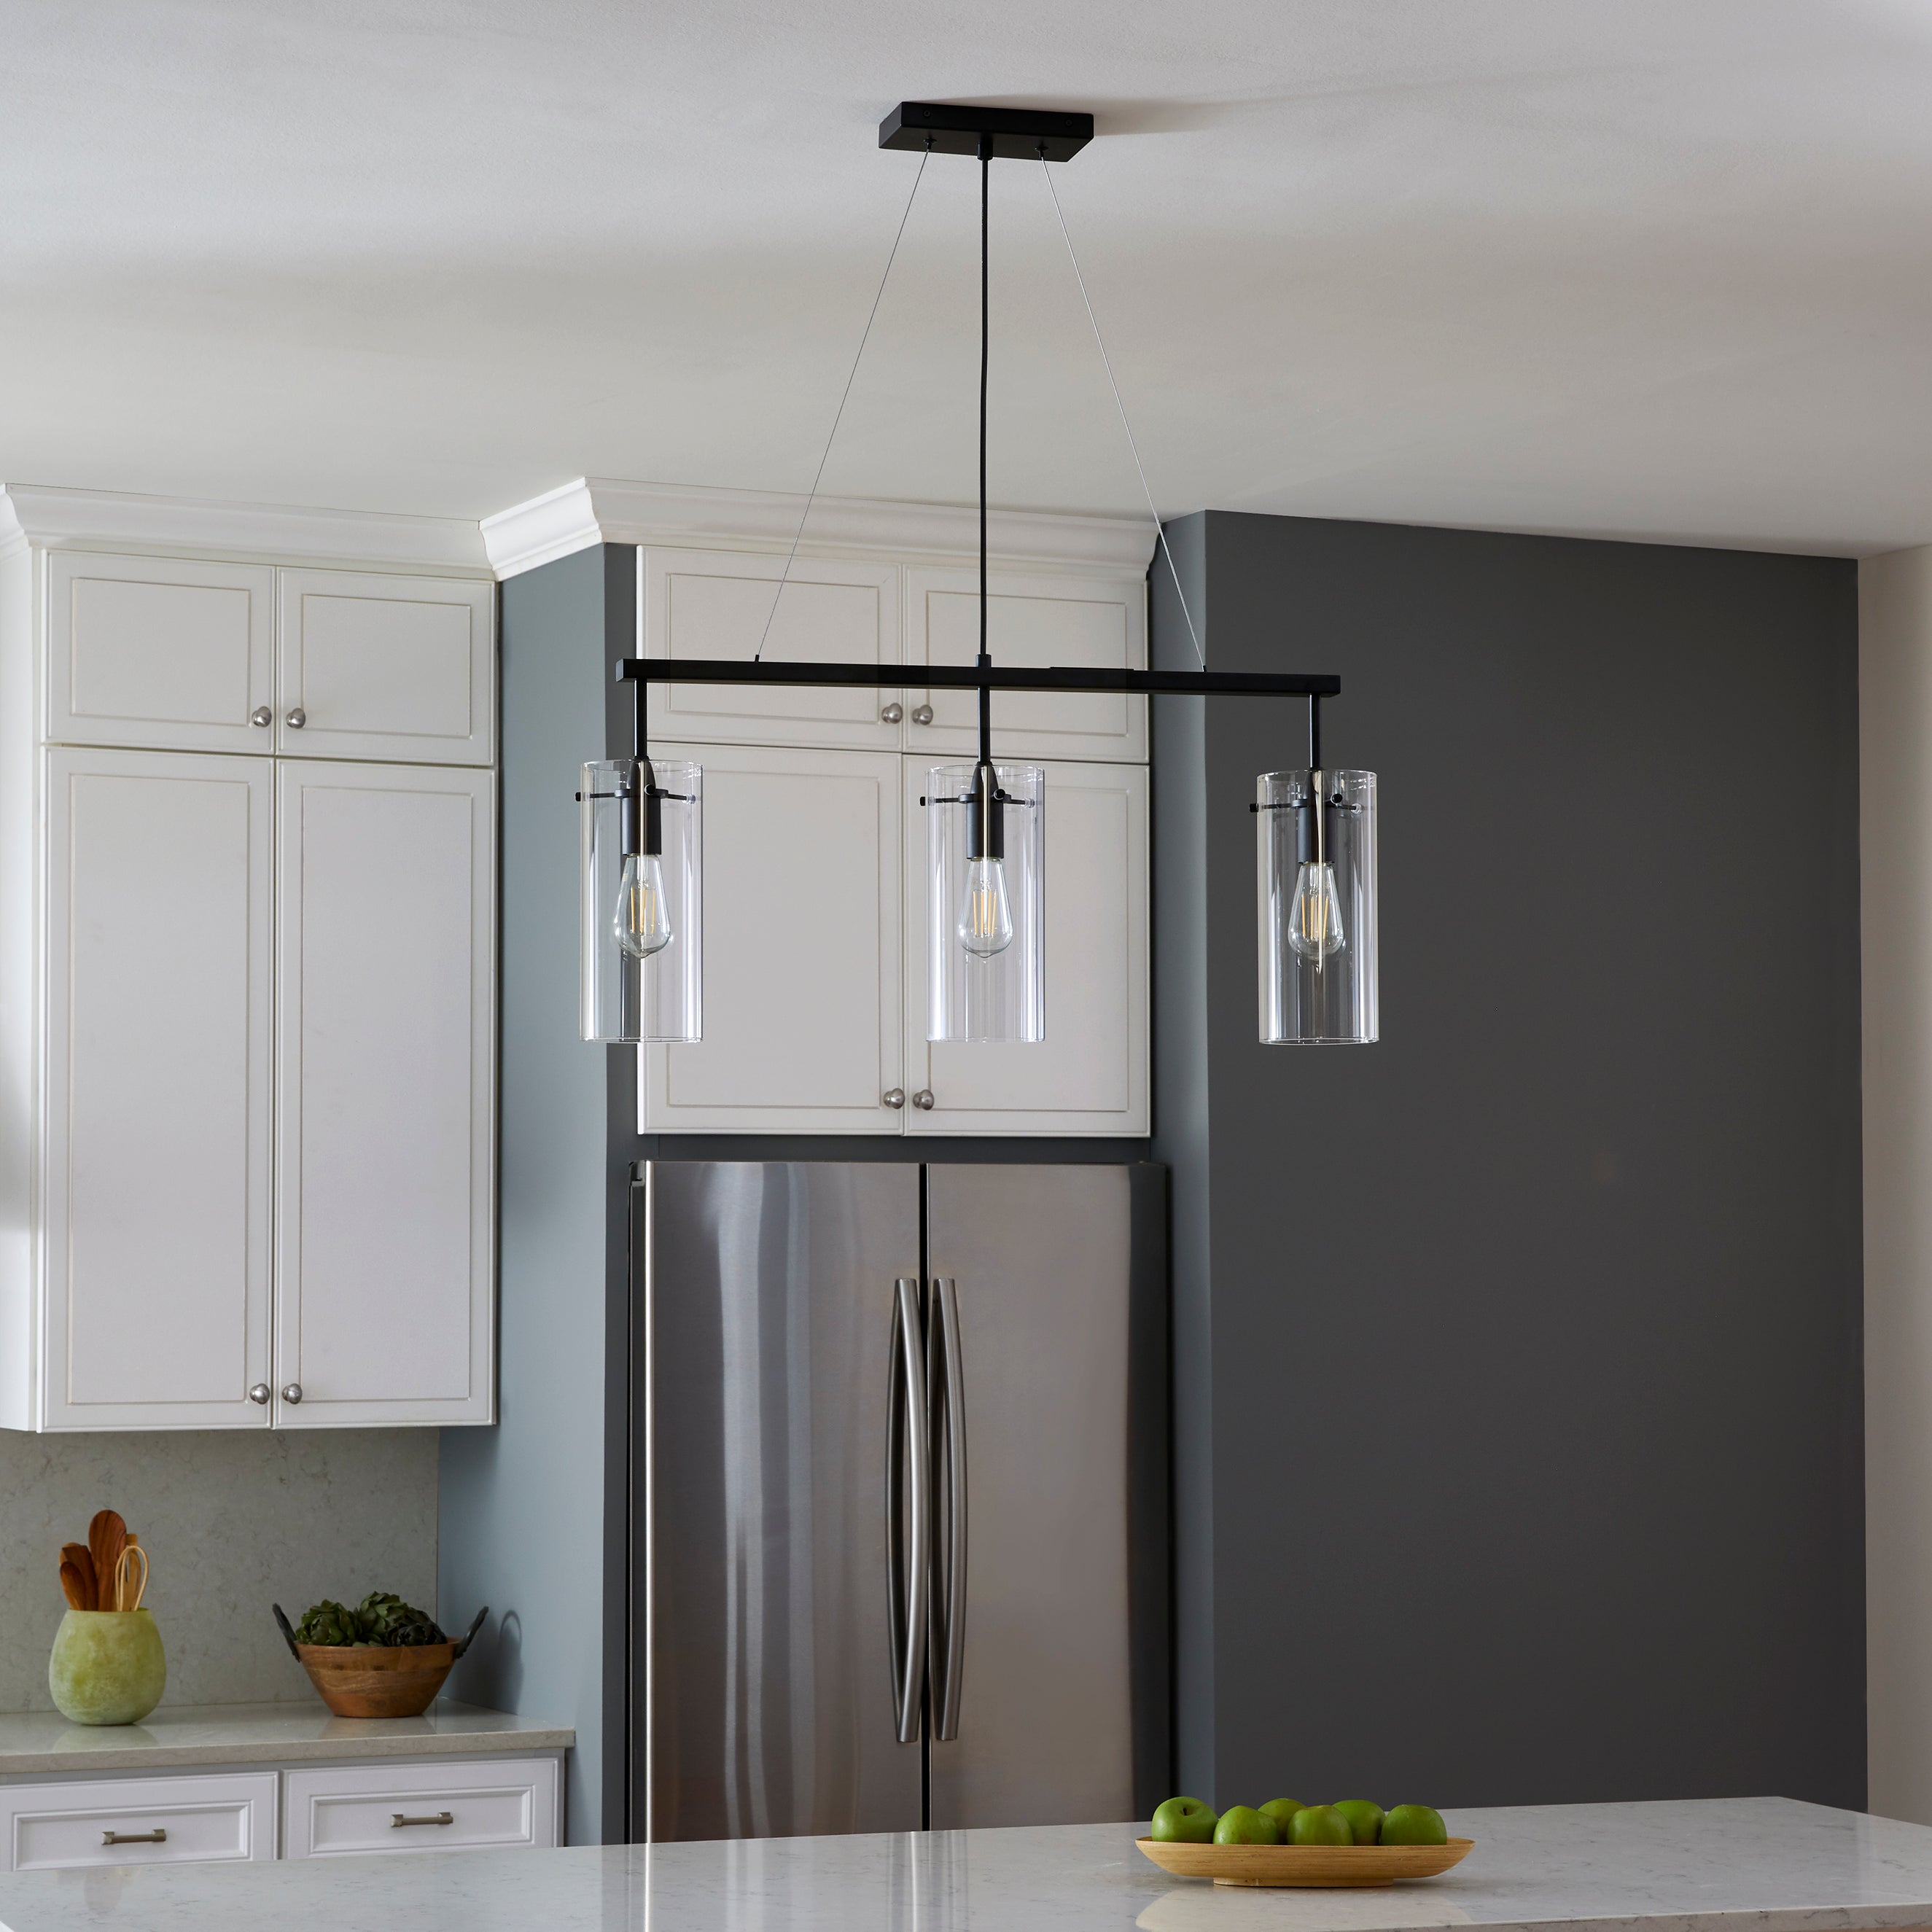 Effimero Large 3 Light Kitchen Island Hanging Light Linea Lighting Modern And Affordable Residential Lighting